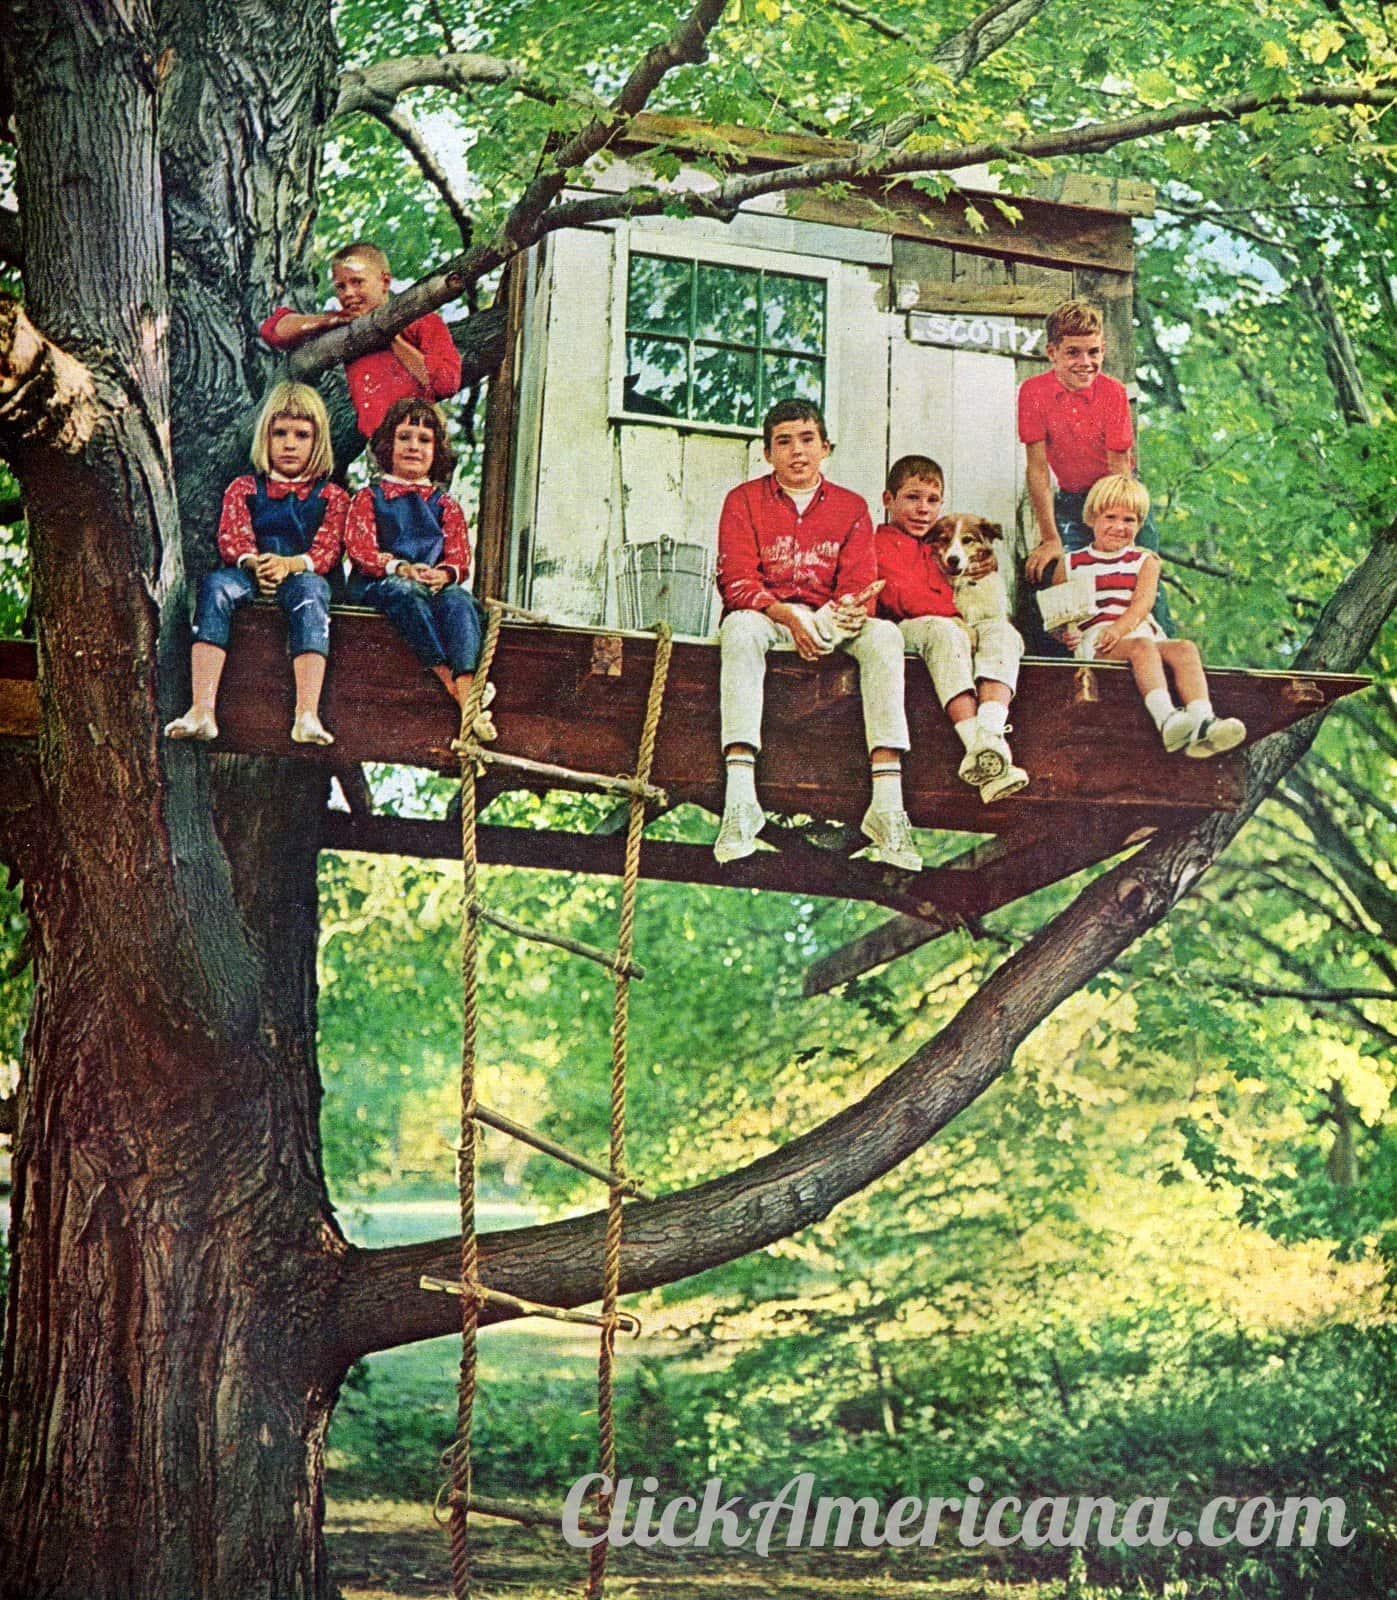 7 kids and a dog hanging out in their tree house (1965)